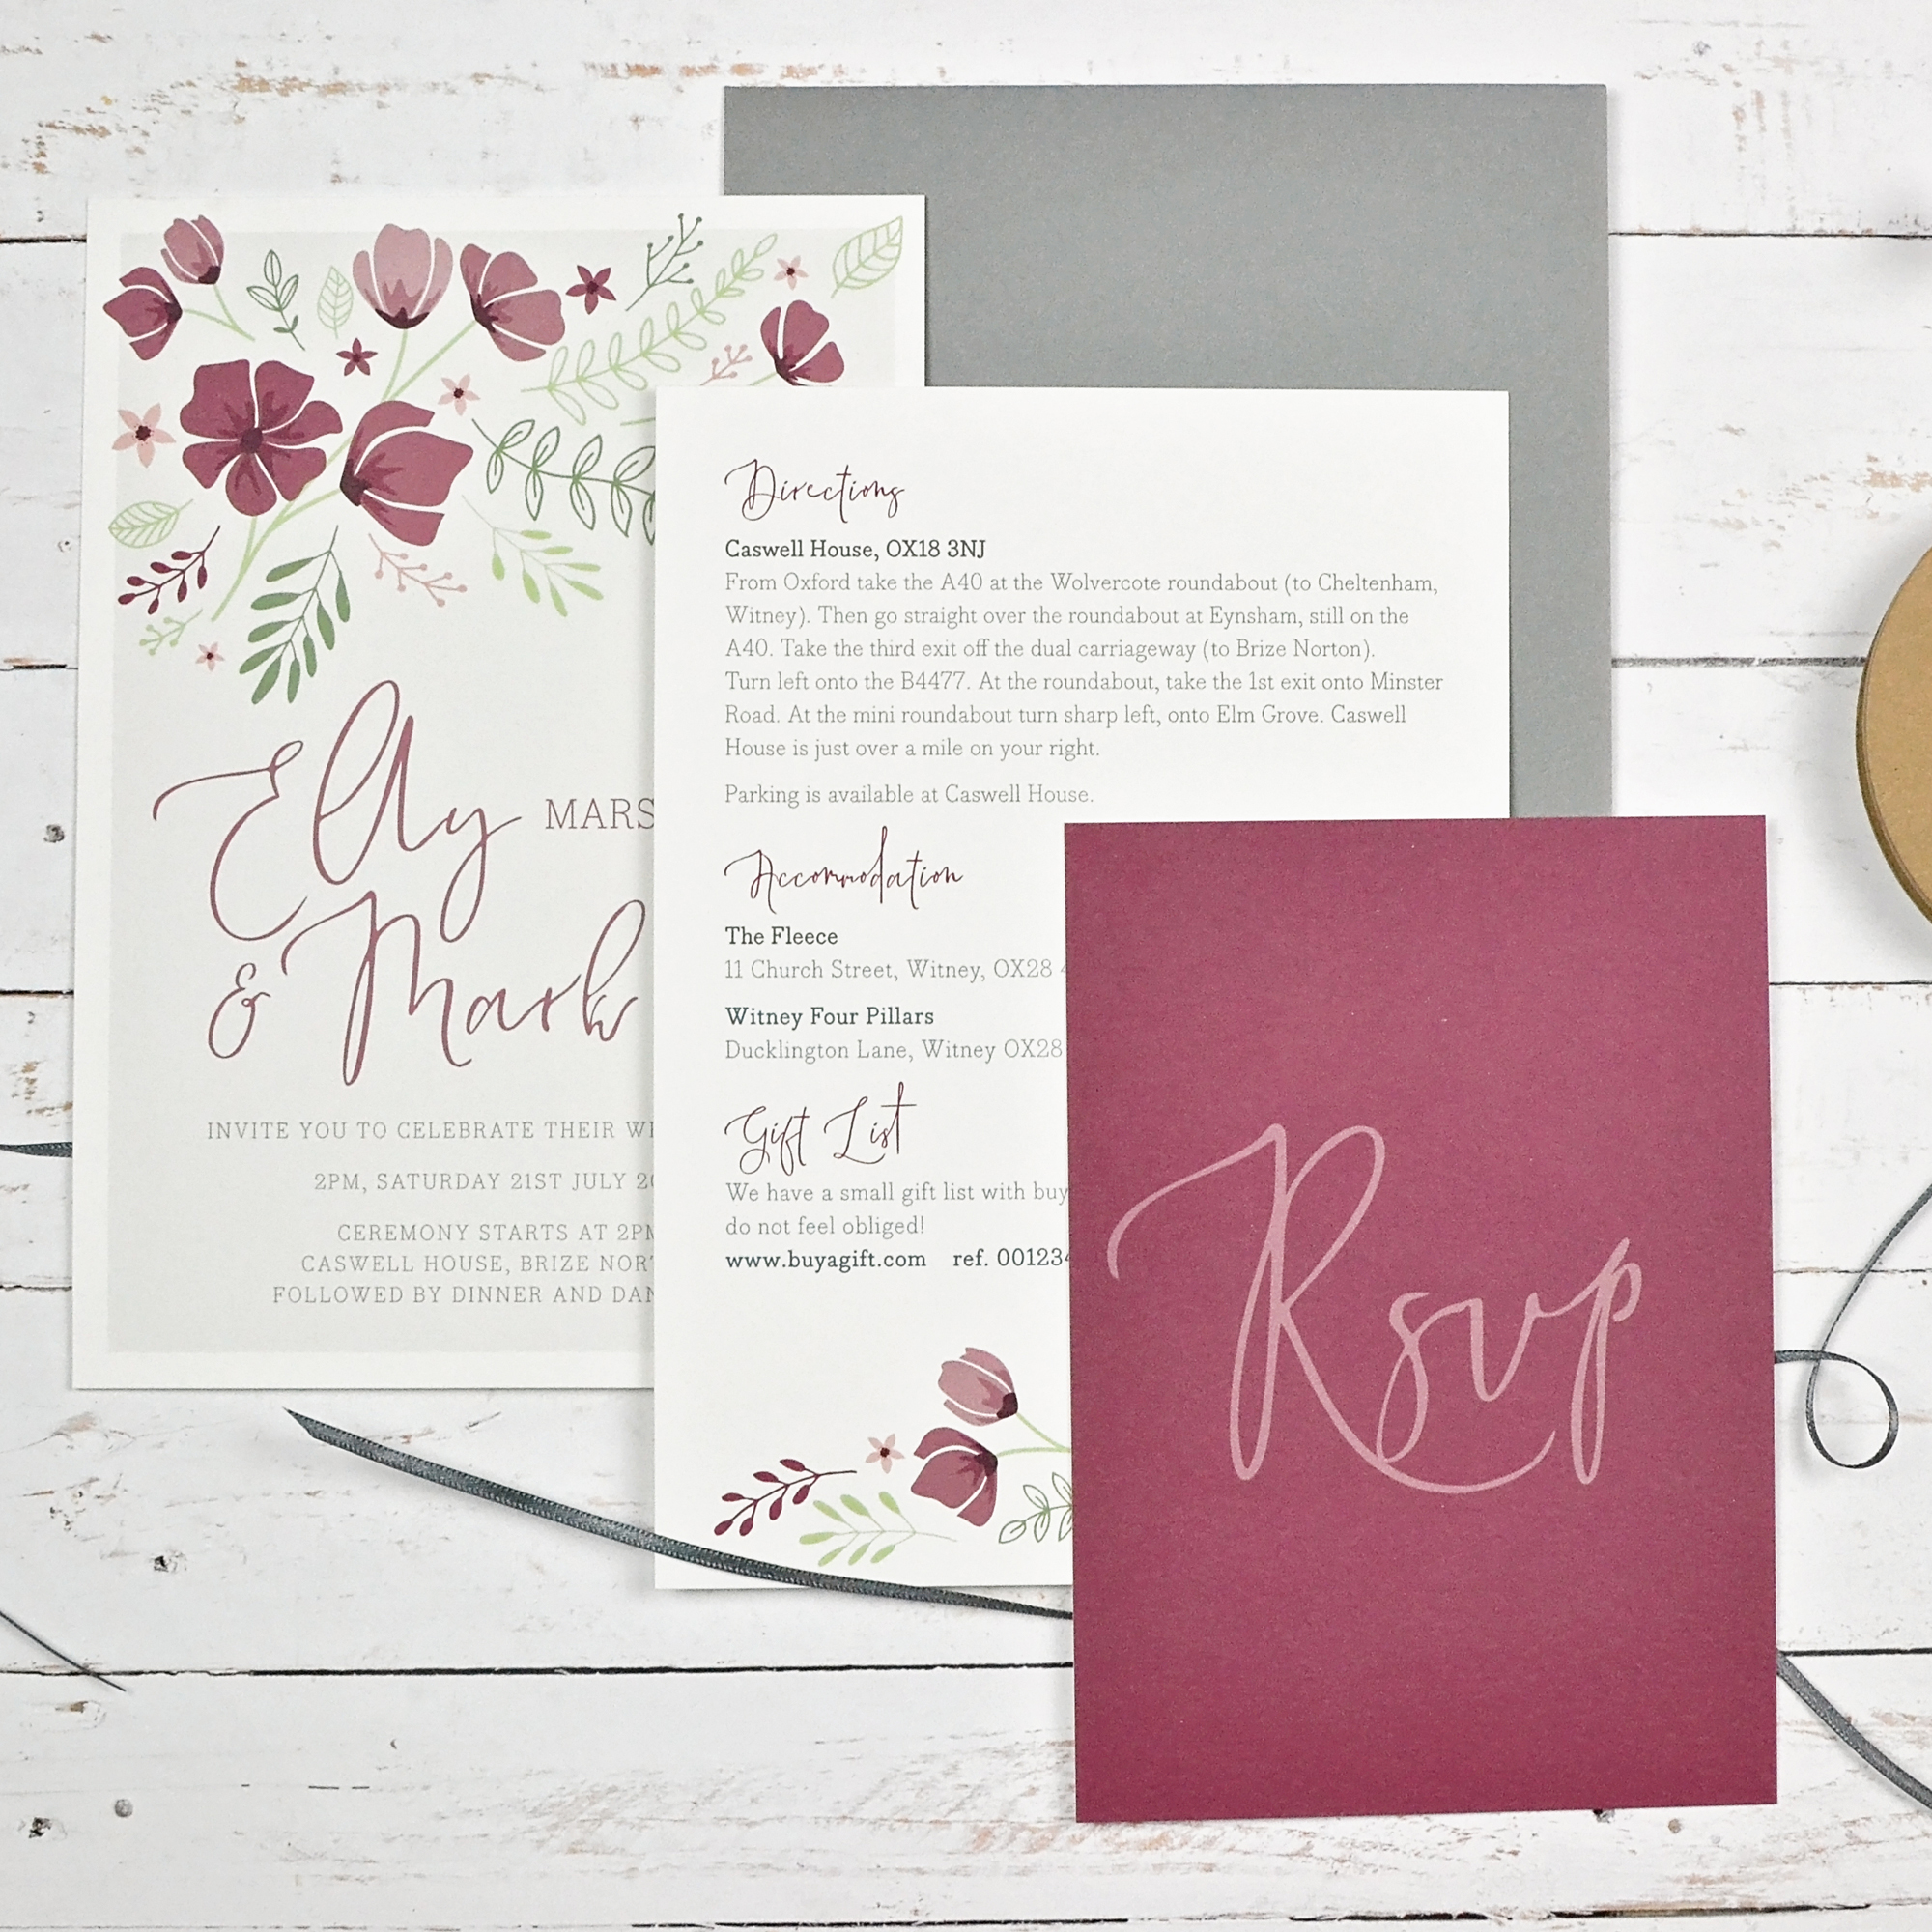 Floral wedding invitation with ribbon